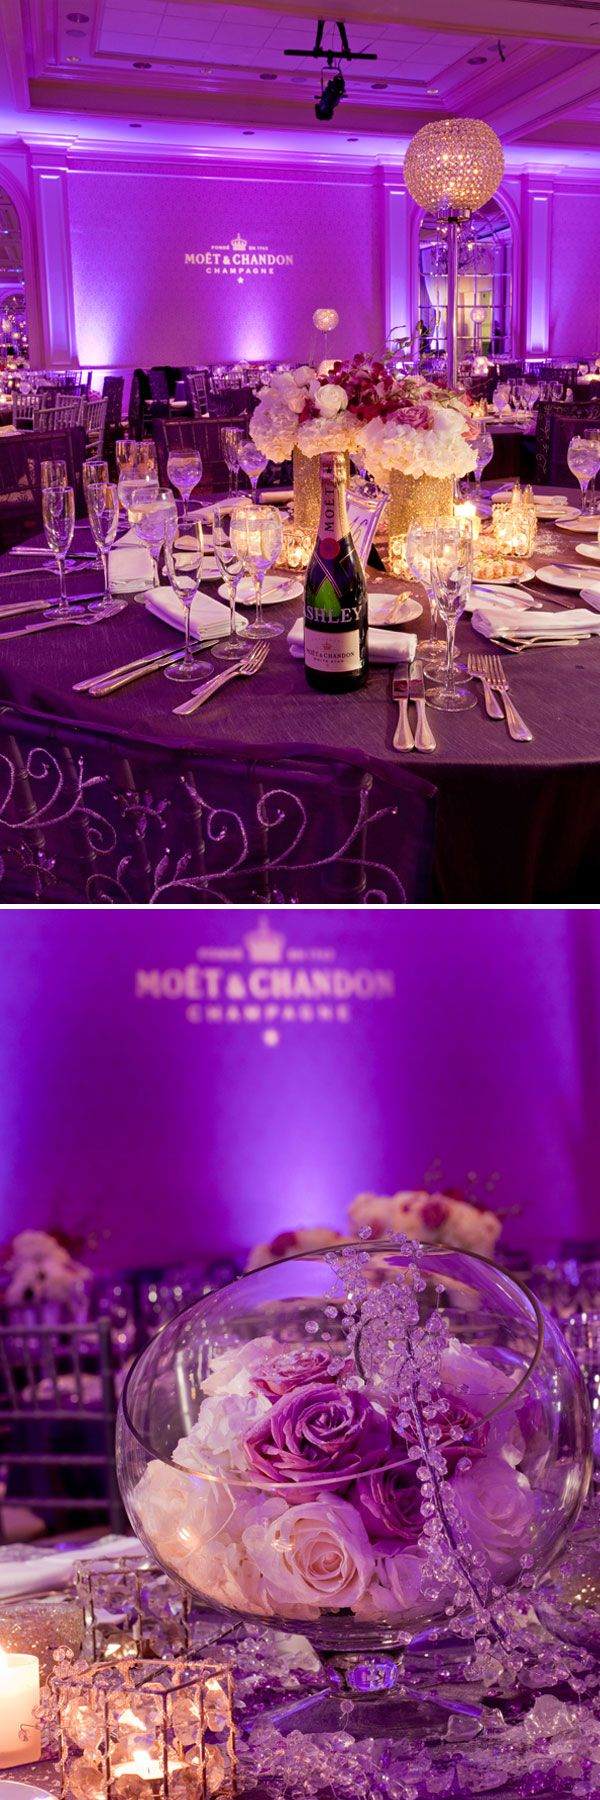 25+ best ideas about Purple wedding decorations on